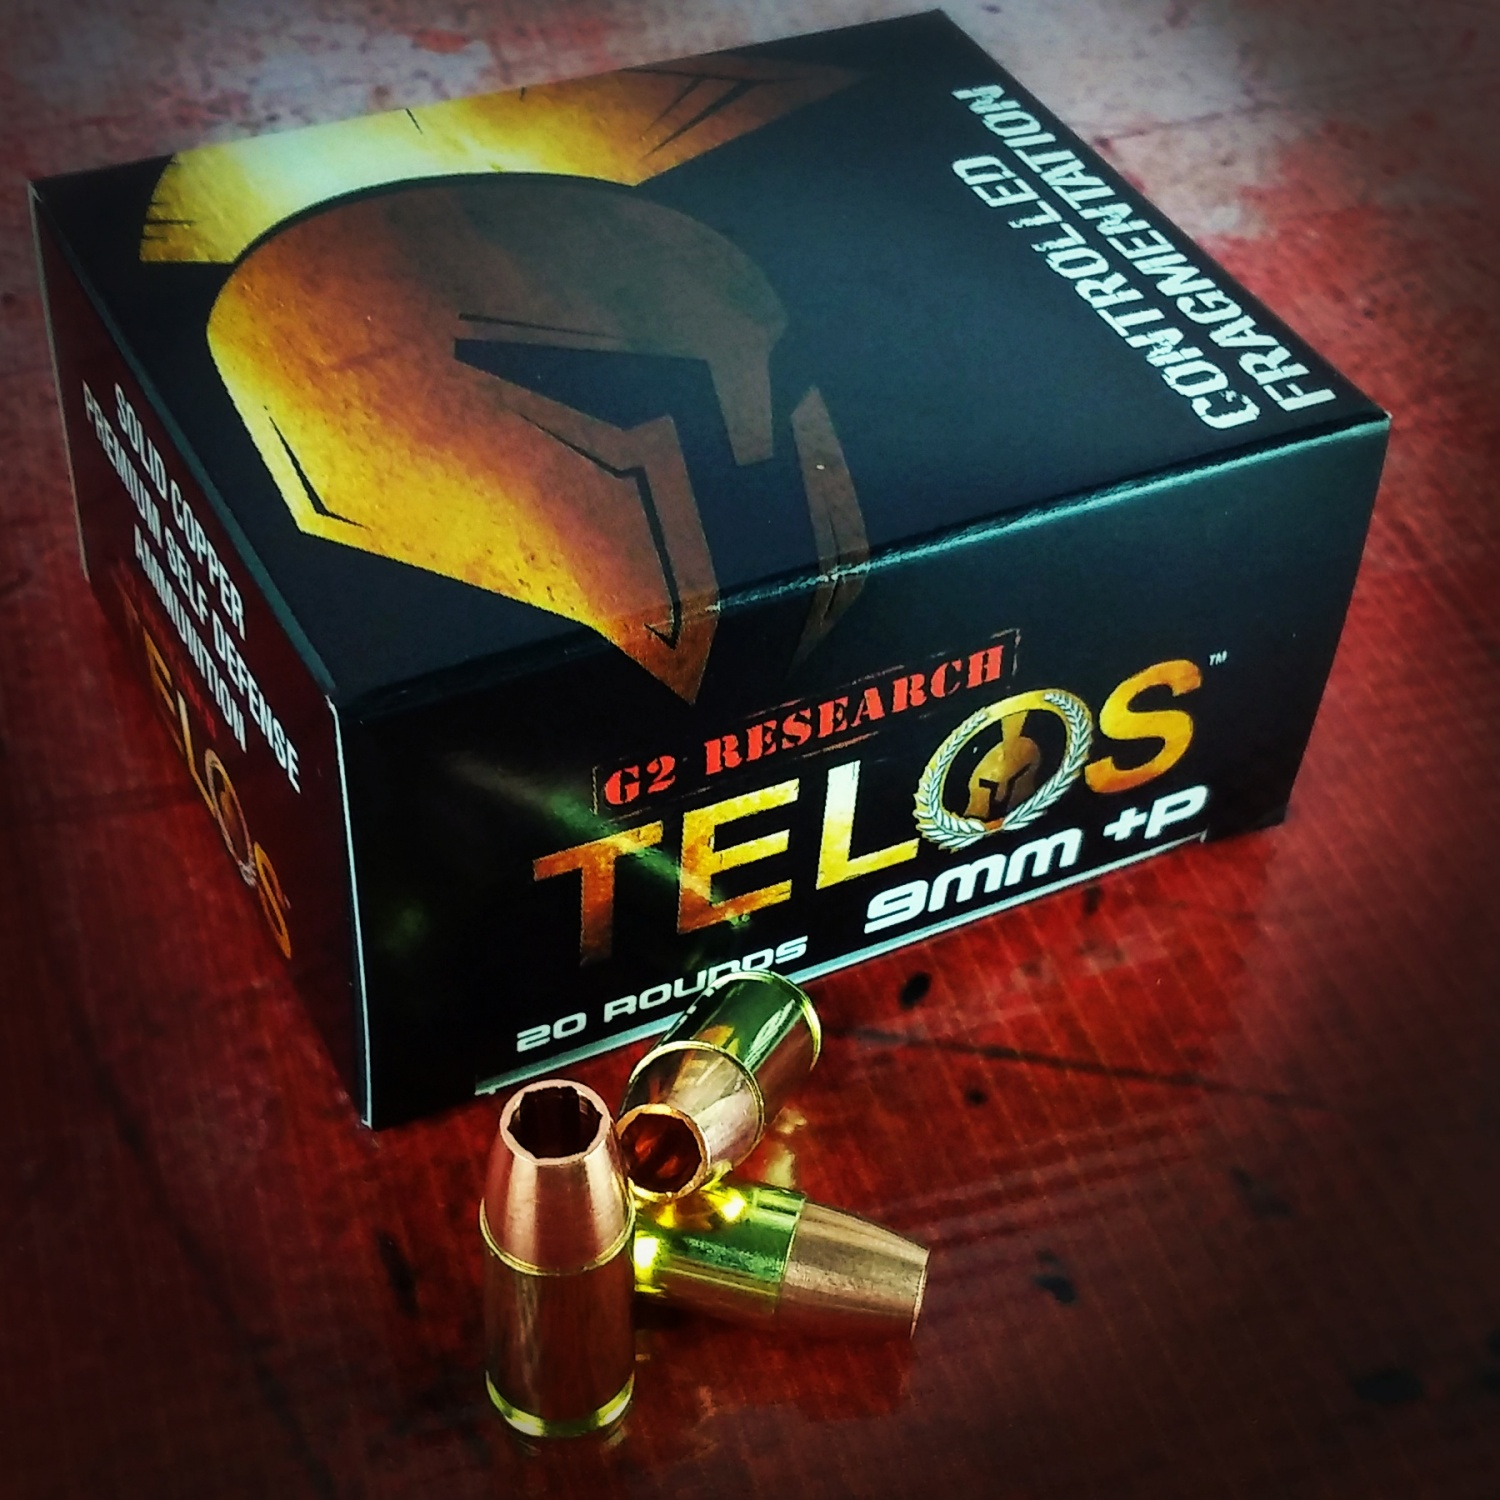 9mm Telos rounds have very similar performance numbers with the RIP rounds and come in at about half the price.